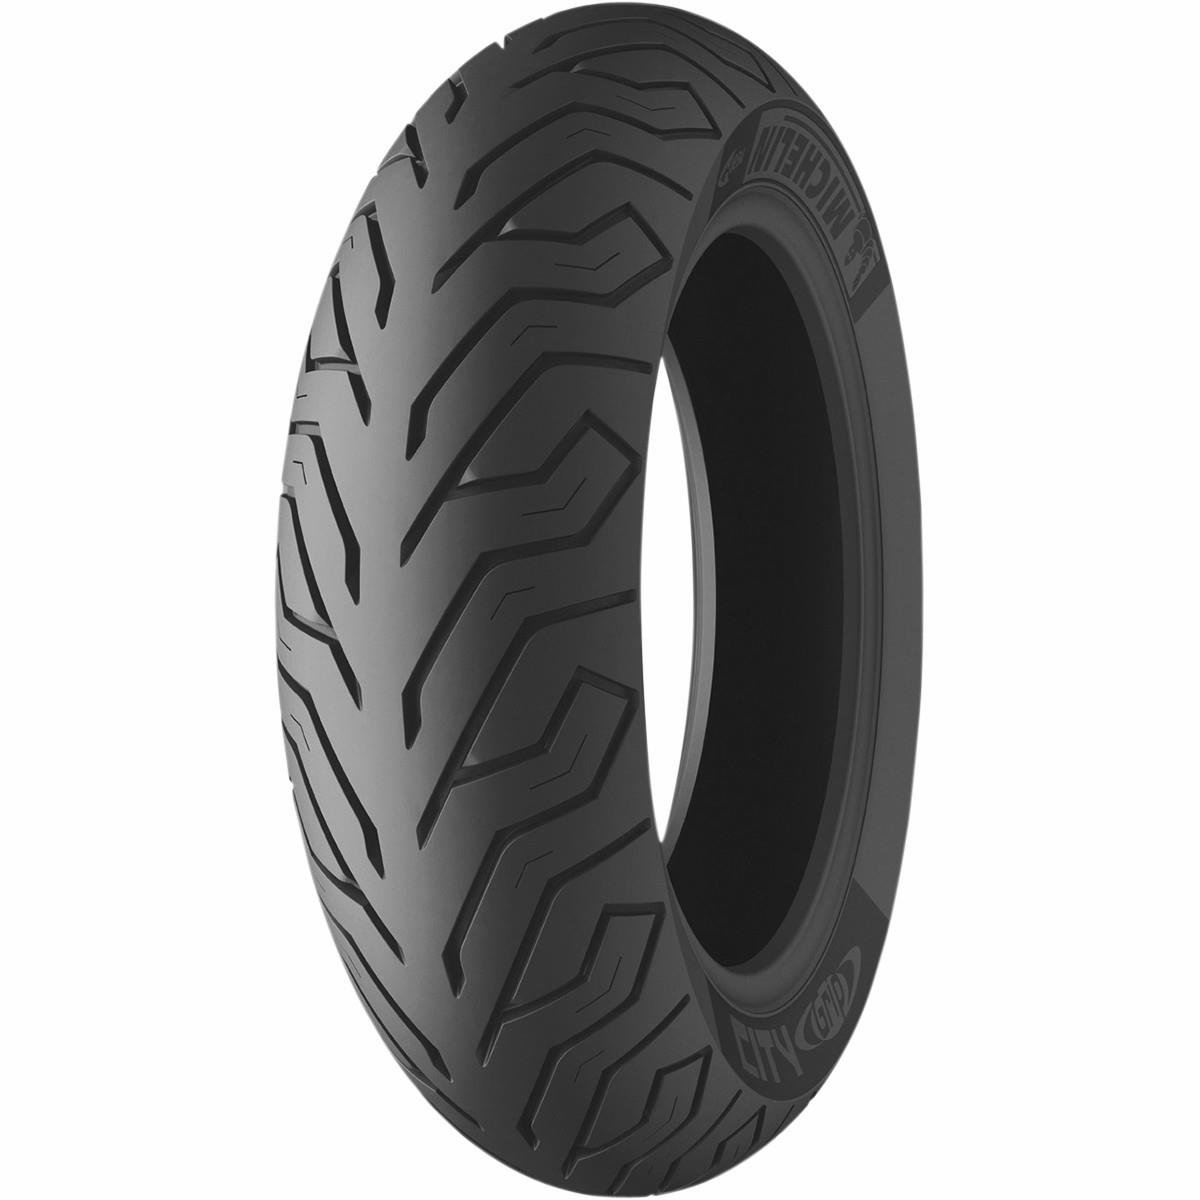 MICHELIN City Grip Scooter Front/Rear Tire 100/80-10